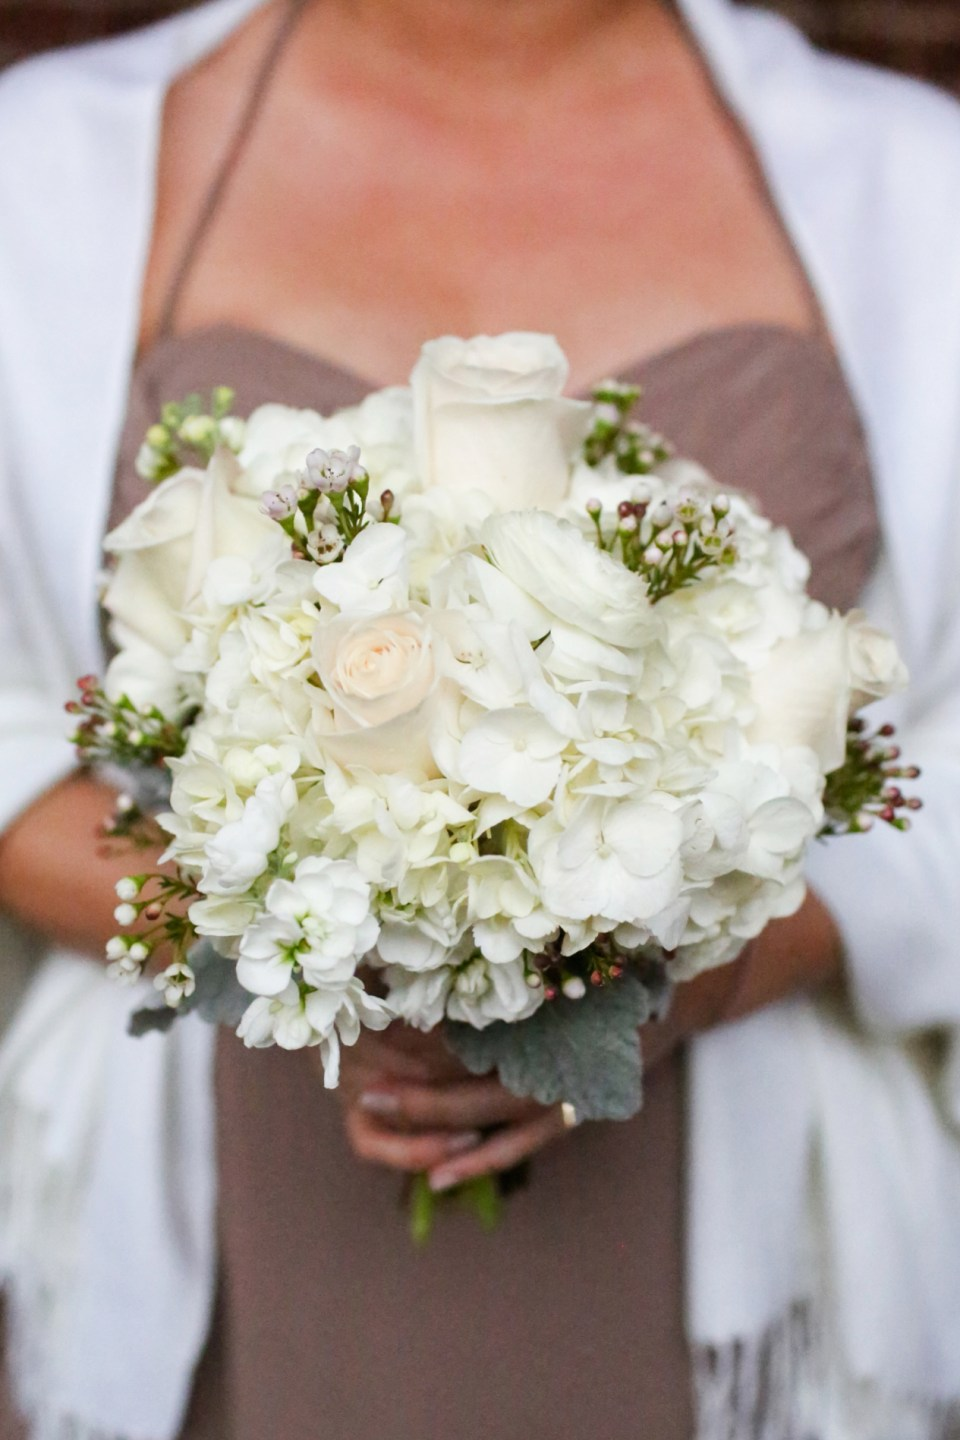 Winter-Wedding-Bouquet-Inspiration-Flowers-Bridal-Bridesmaids432